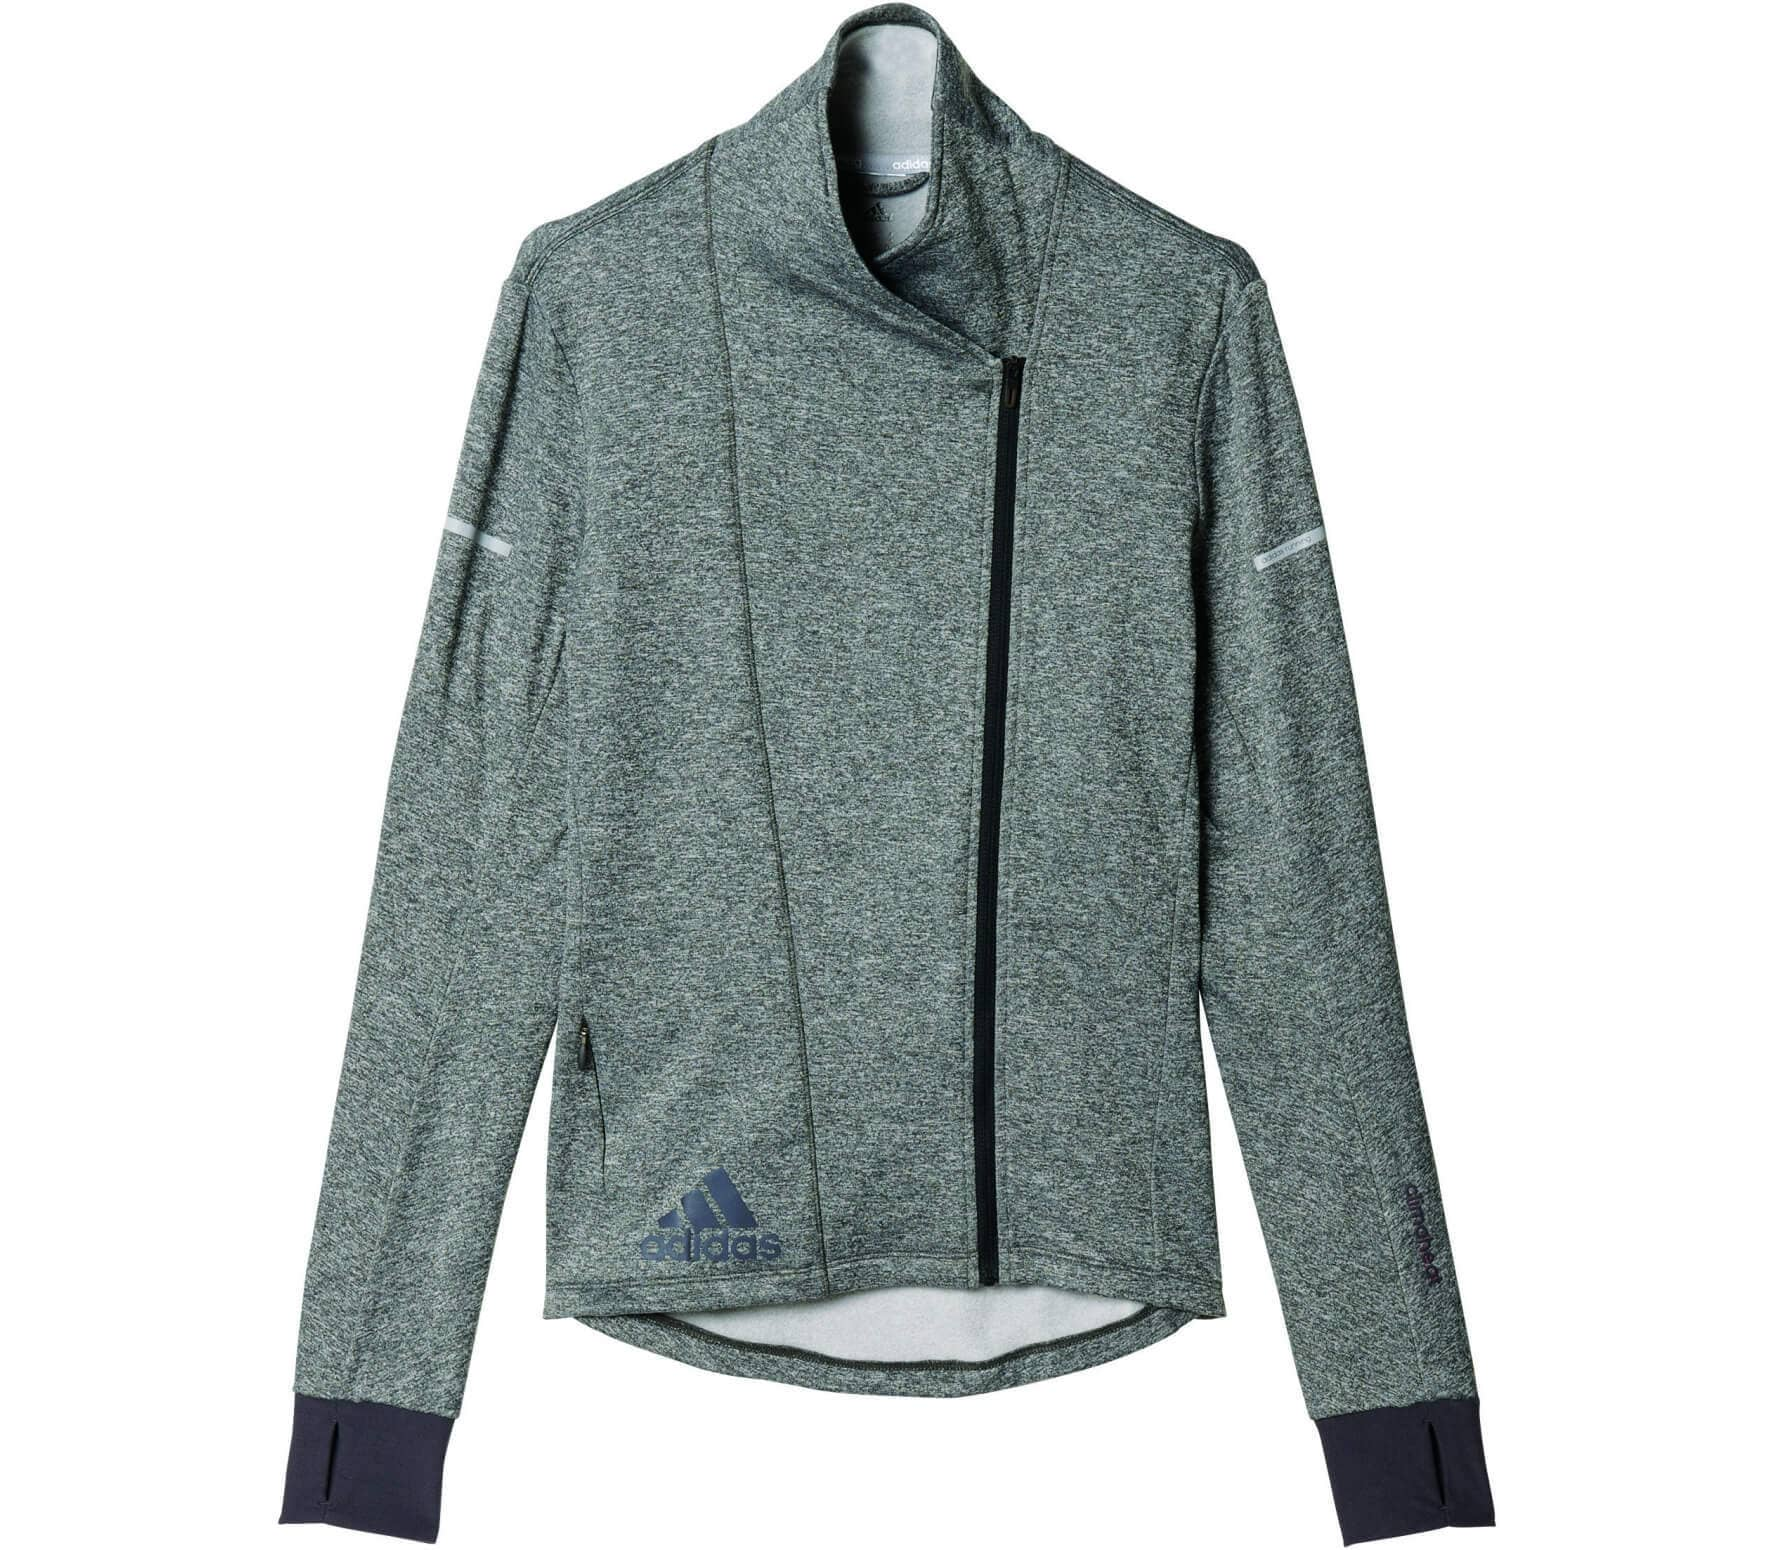 Adidas - Sequencials Climaheat women's running jacket (grey/black) - S thumbnail